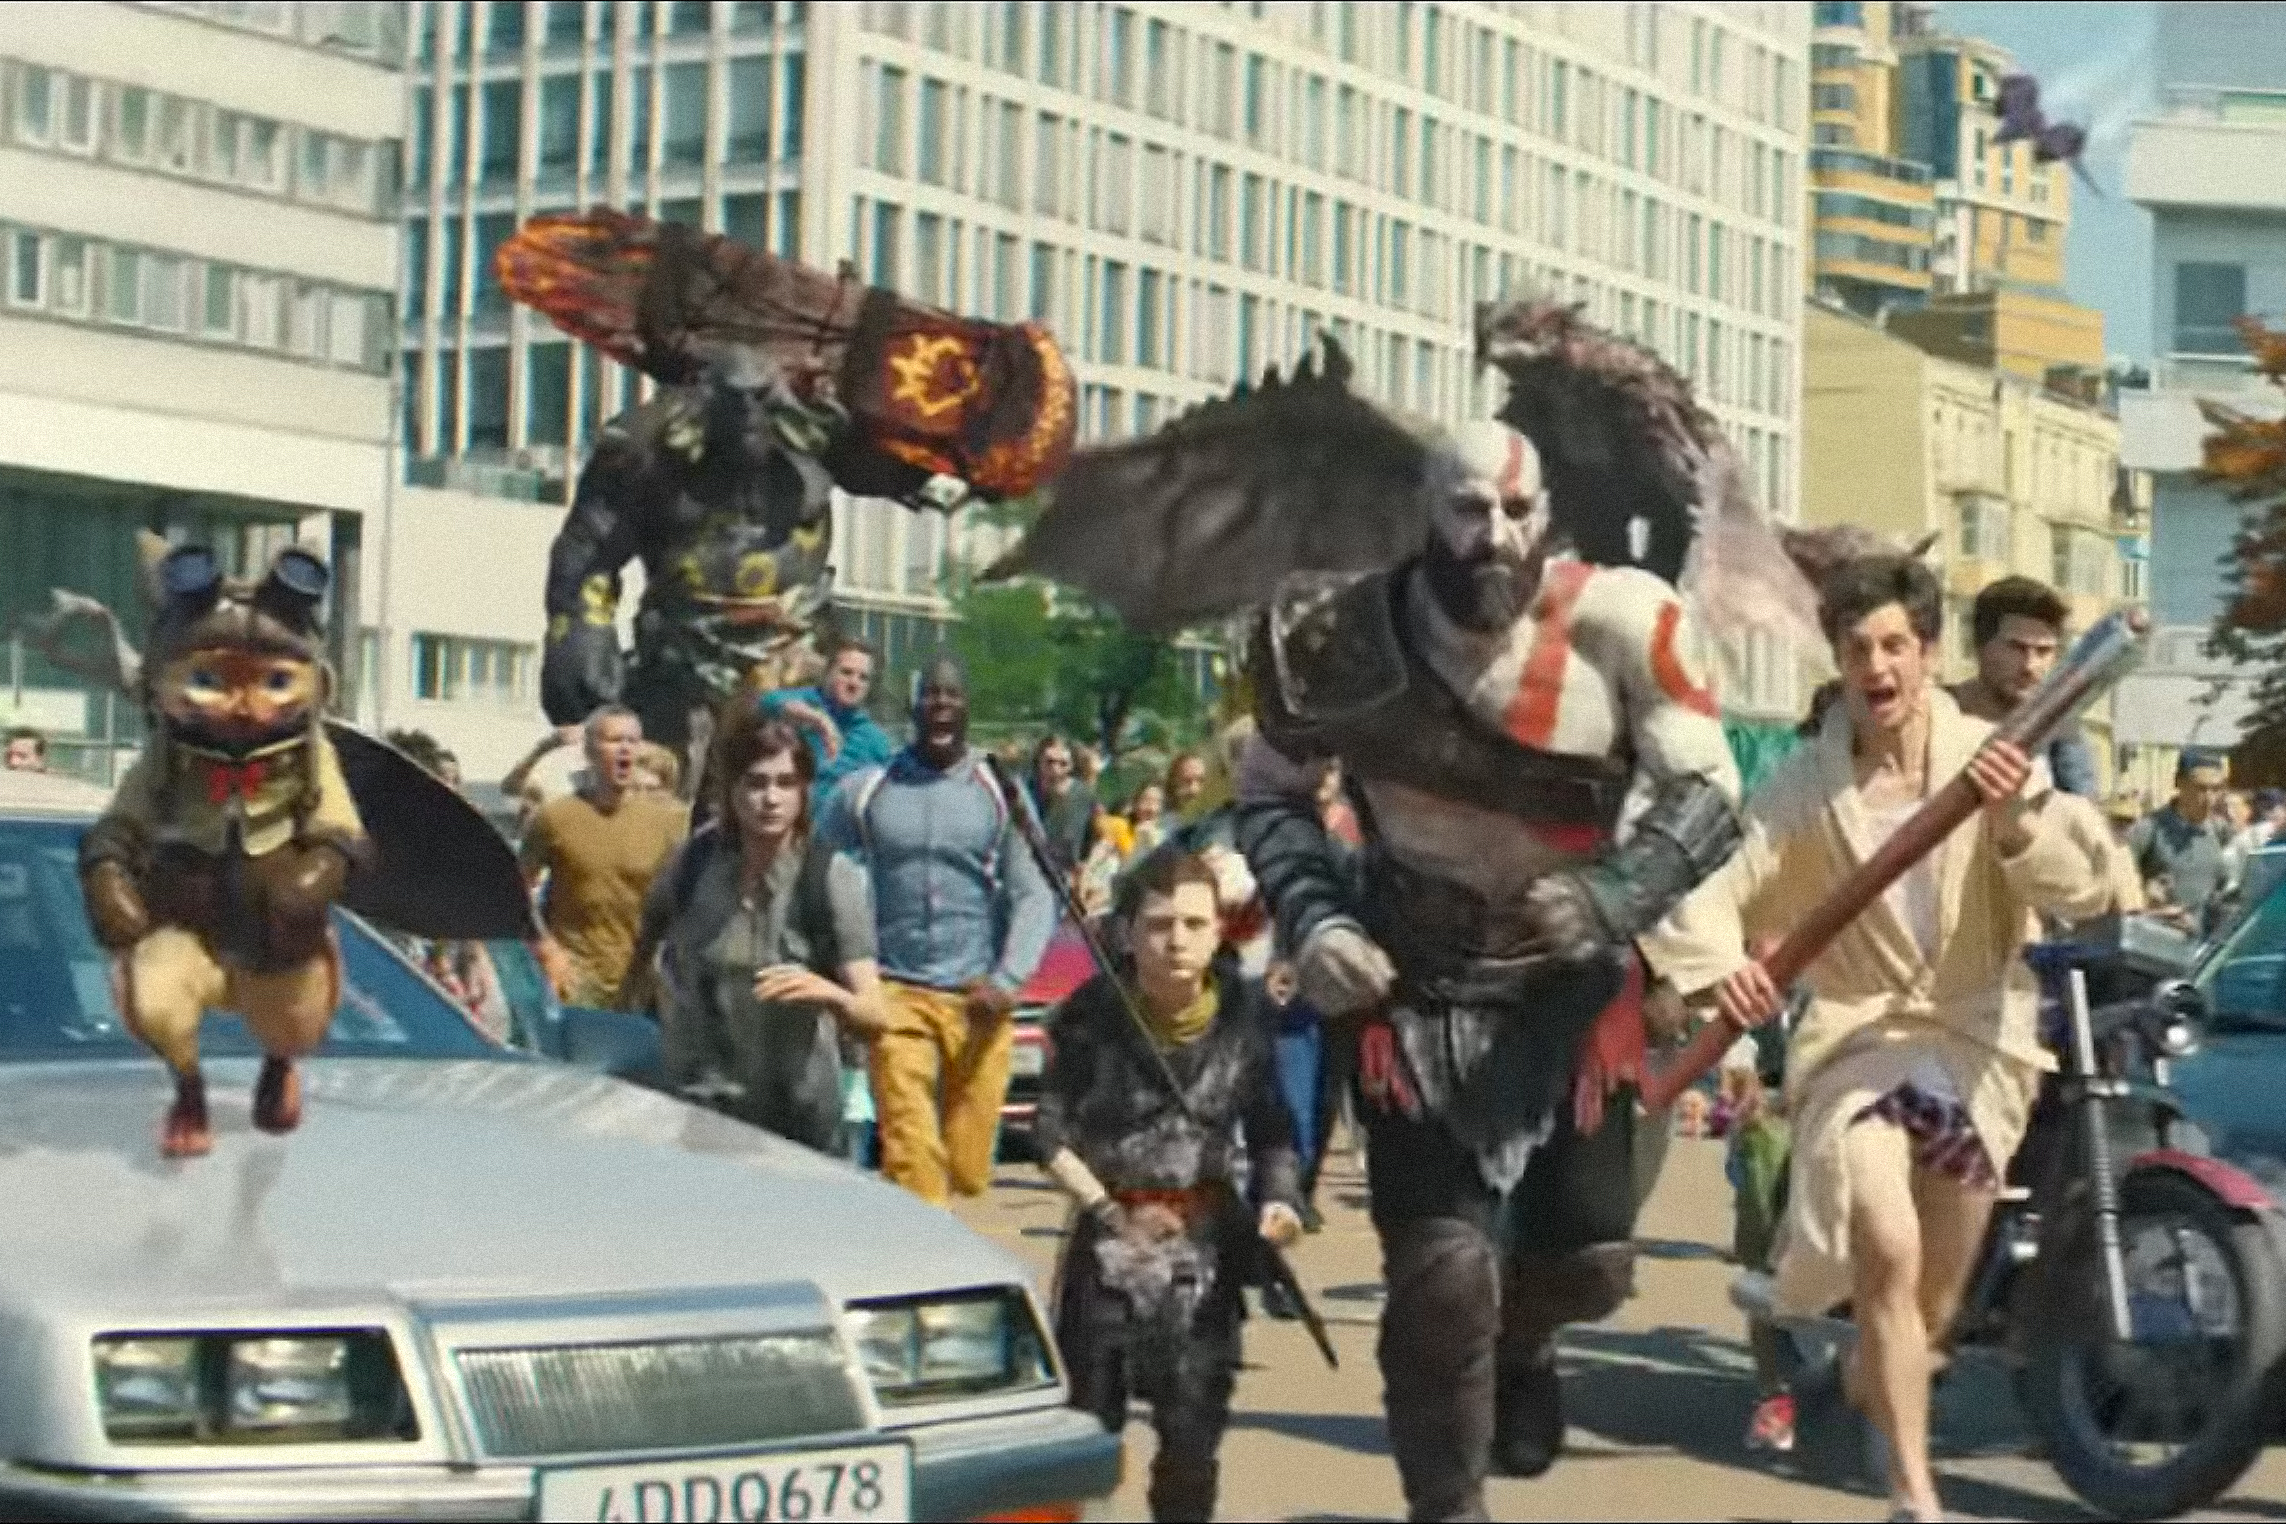 Sony Playstation's latest ad is a spectacular riot of gamers and characters